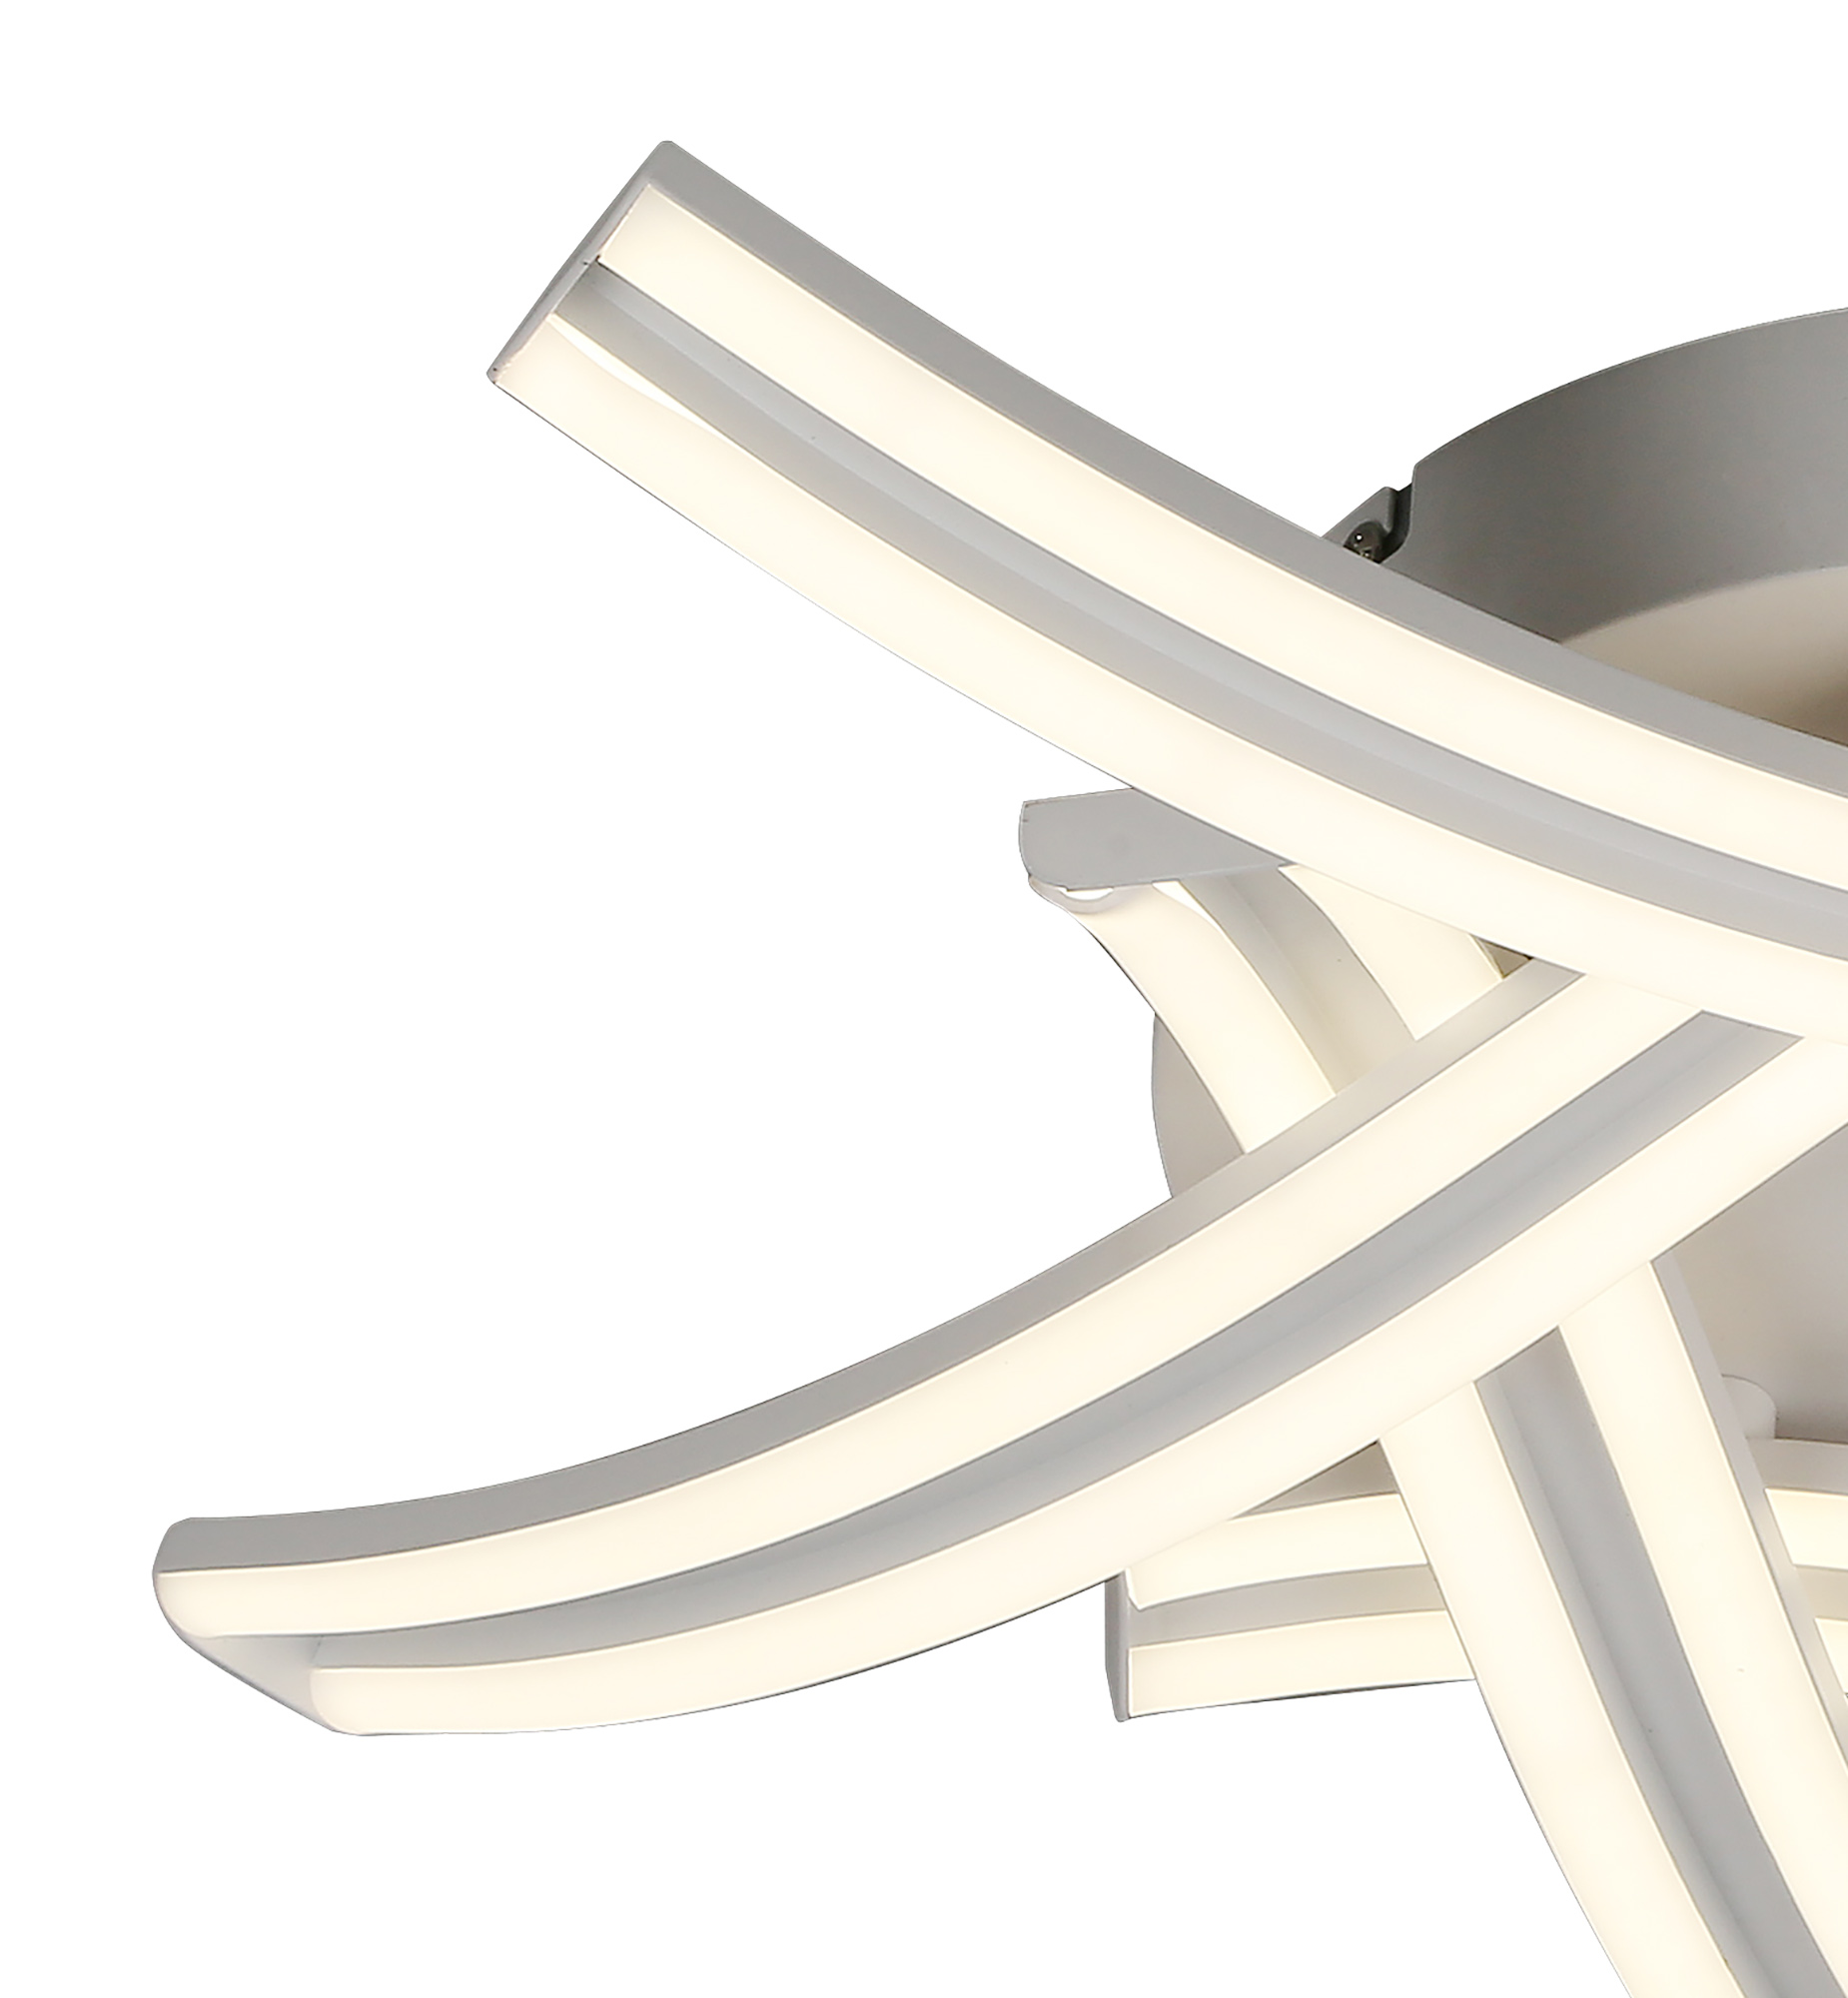 5 Light Ceiling, 5 x 12W LED, 4000K, 3 Step Dimming, 3792lm, White, 3yrs Warranty